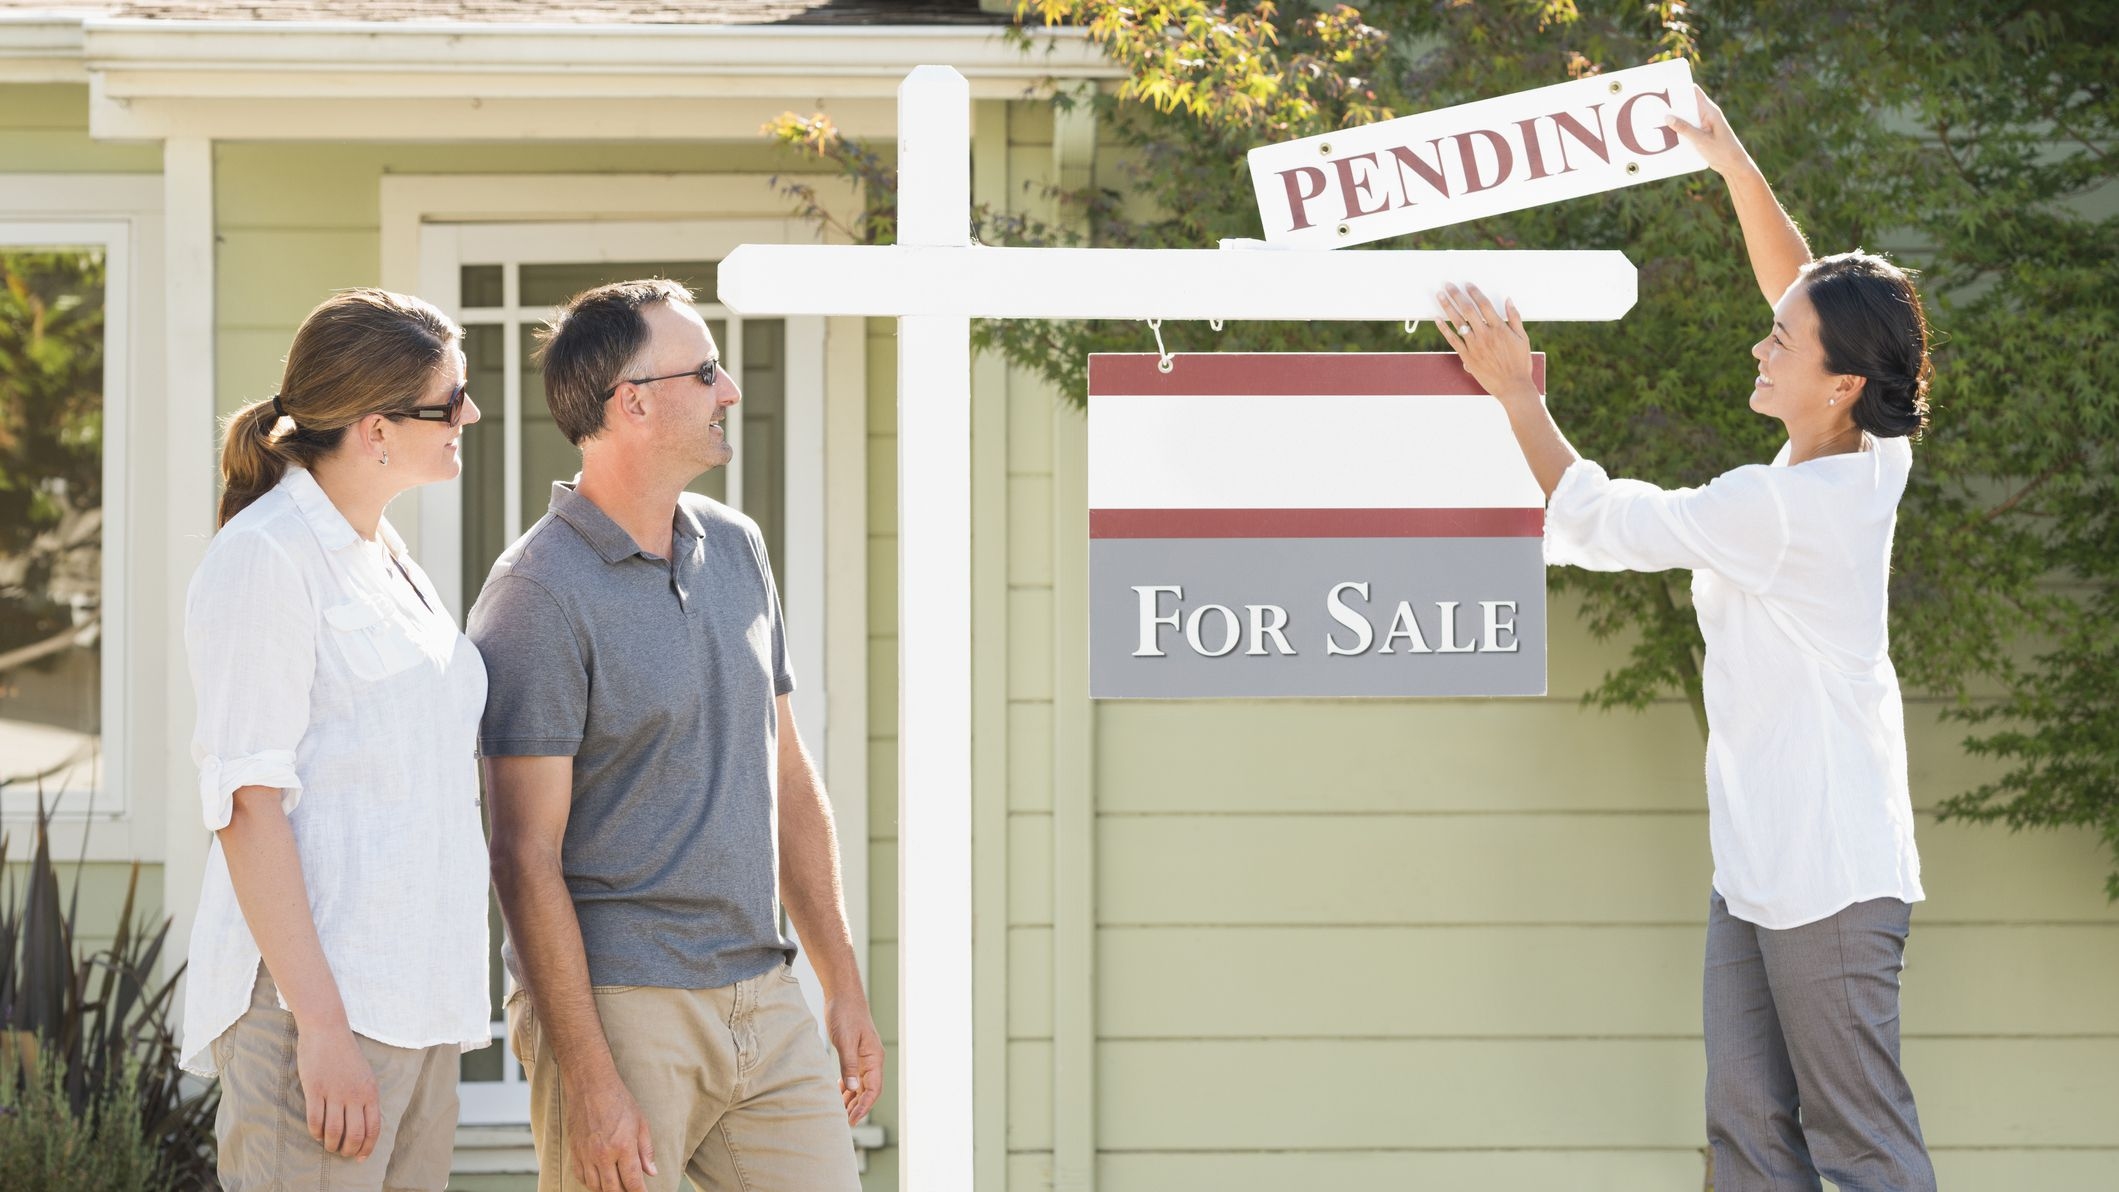 What Is Contingent And Pending In Real Estate